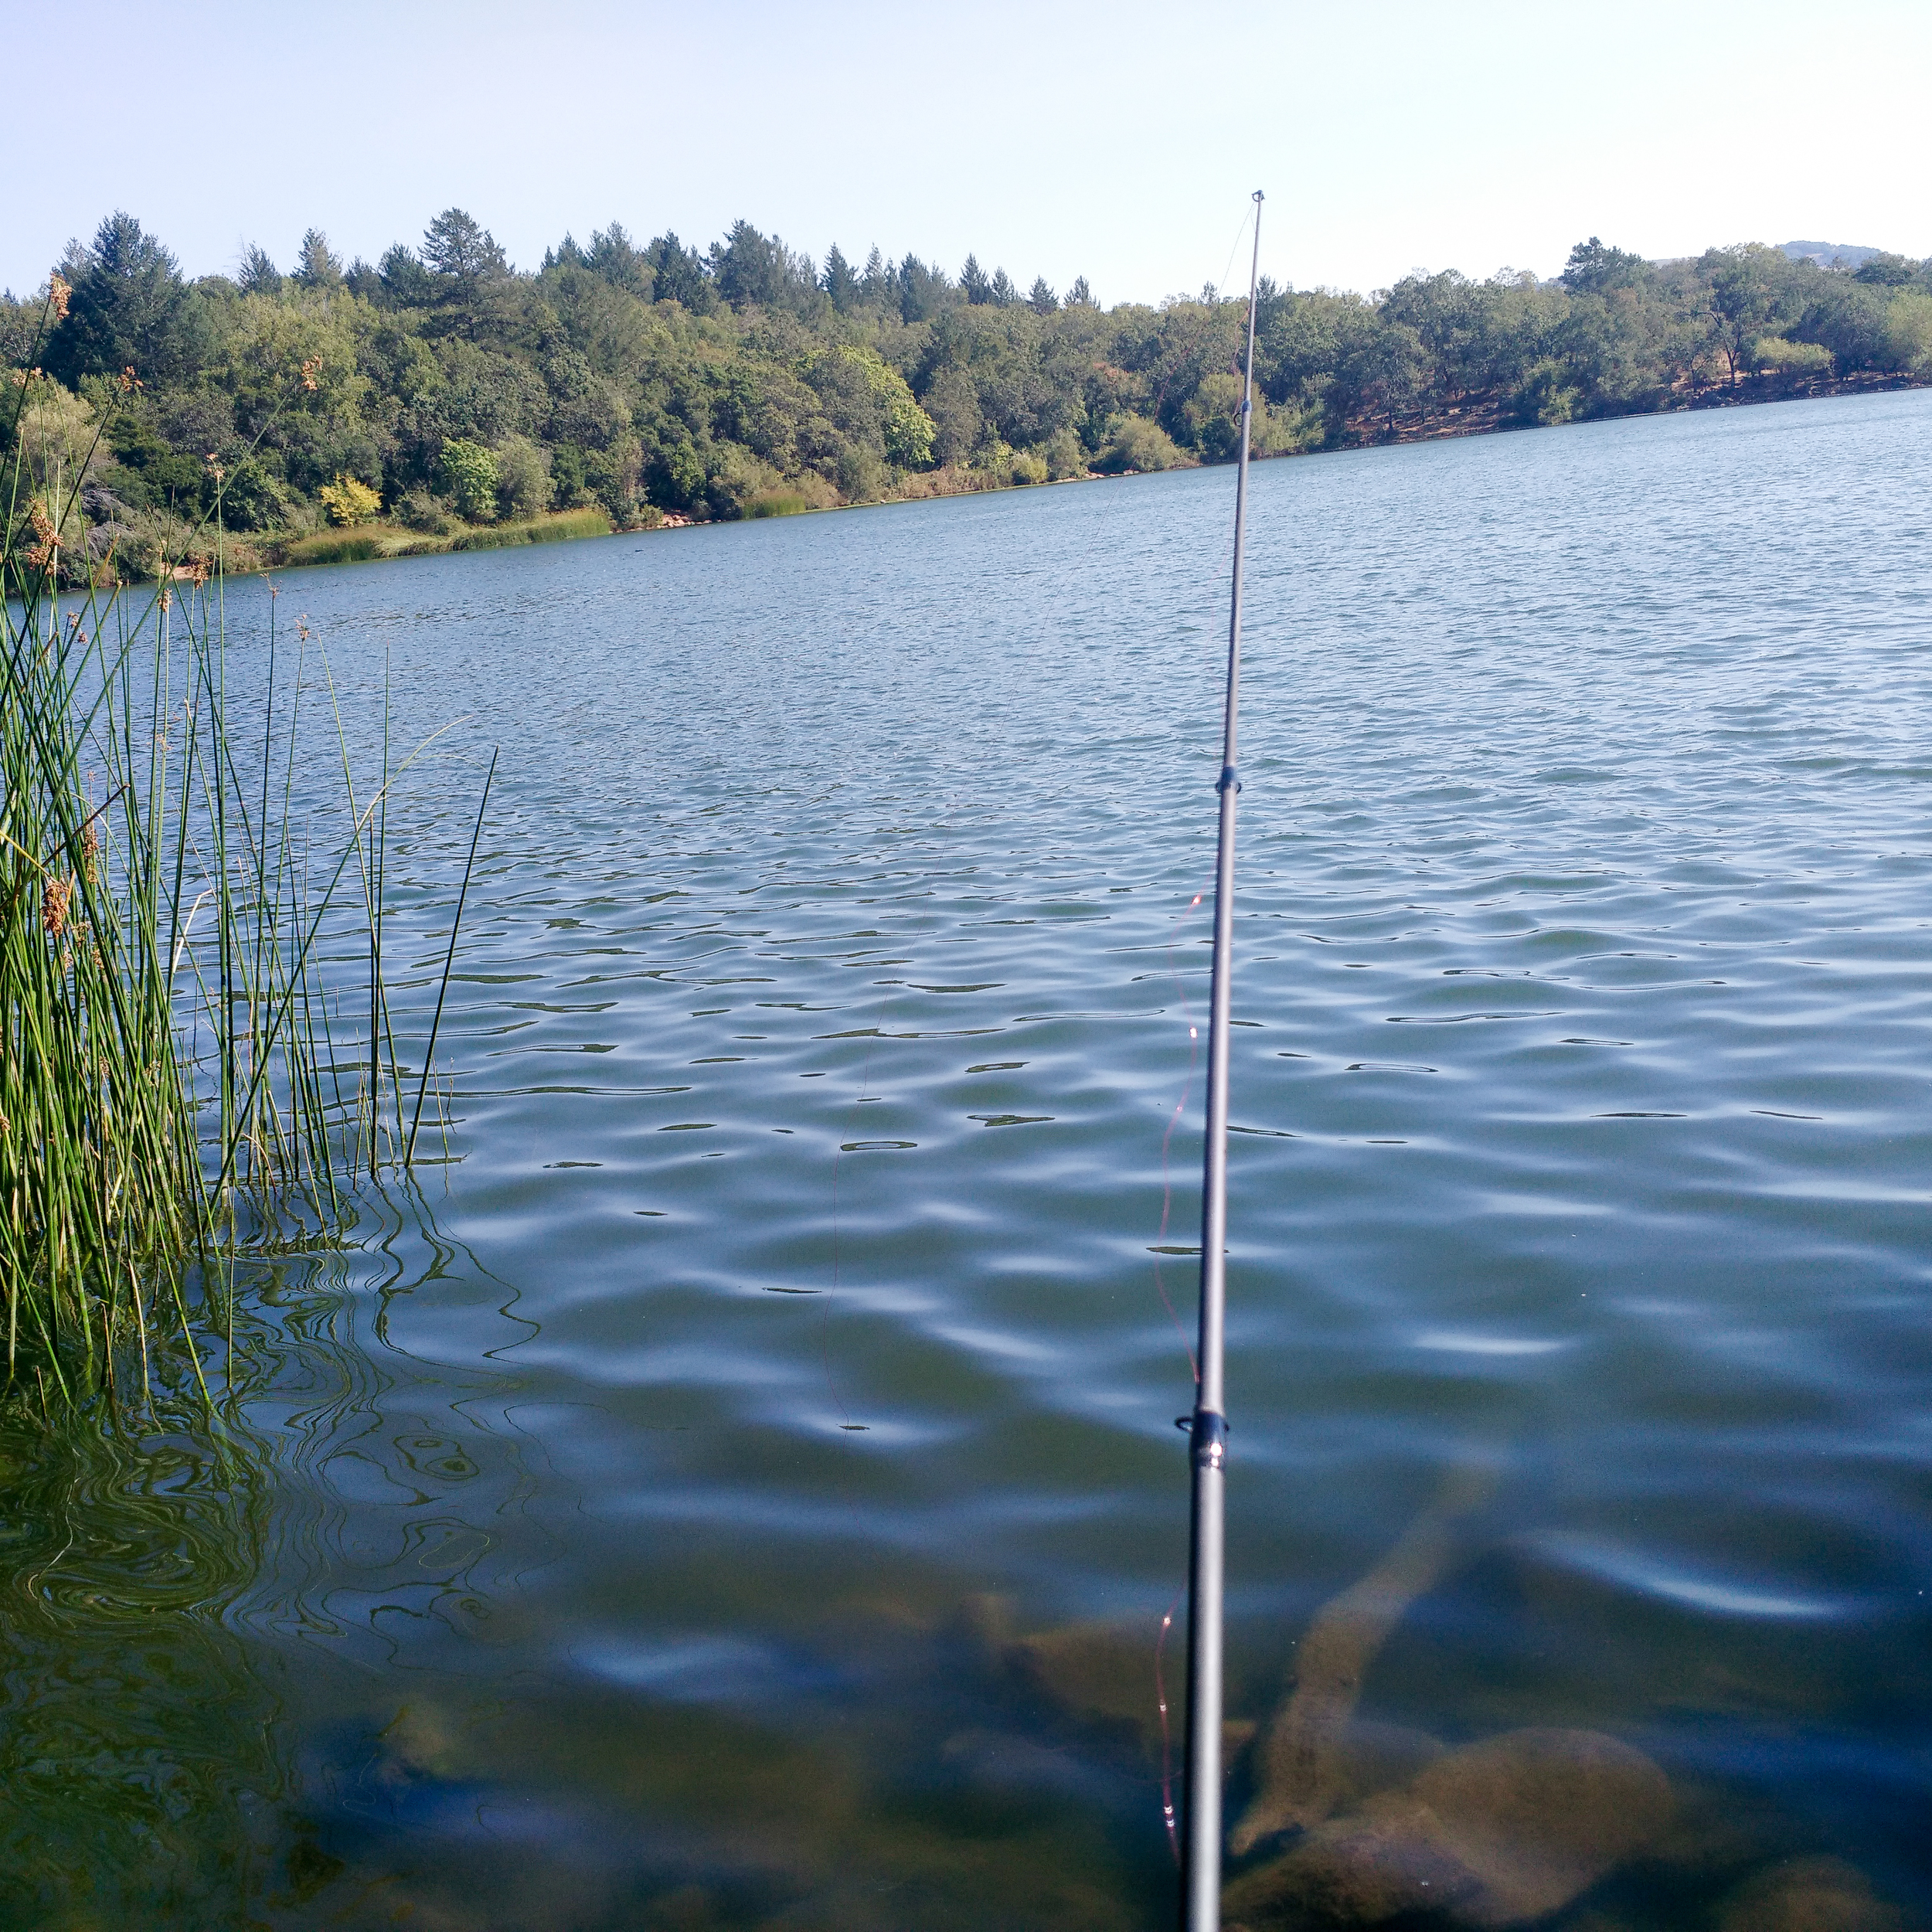 While killing time in California, I decided my life needed a telescopic (collapsible) fishing rod that I could travel with. Then I spent most afternoons catching fish from lakes around Sonoma County. Heaven.